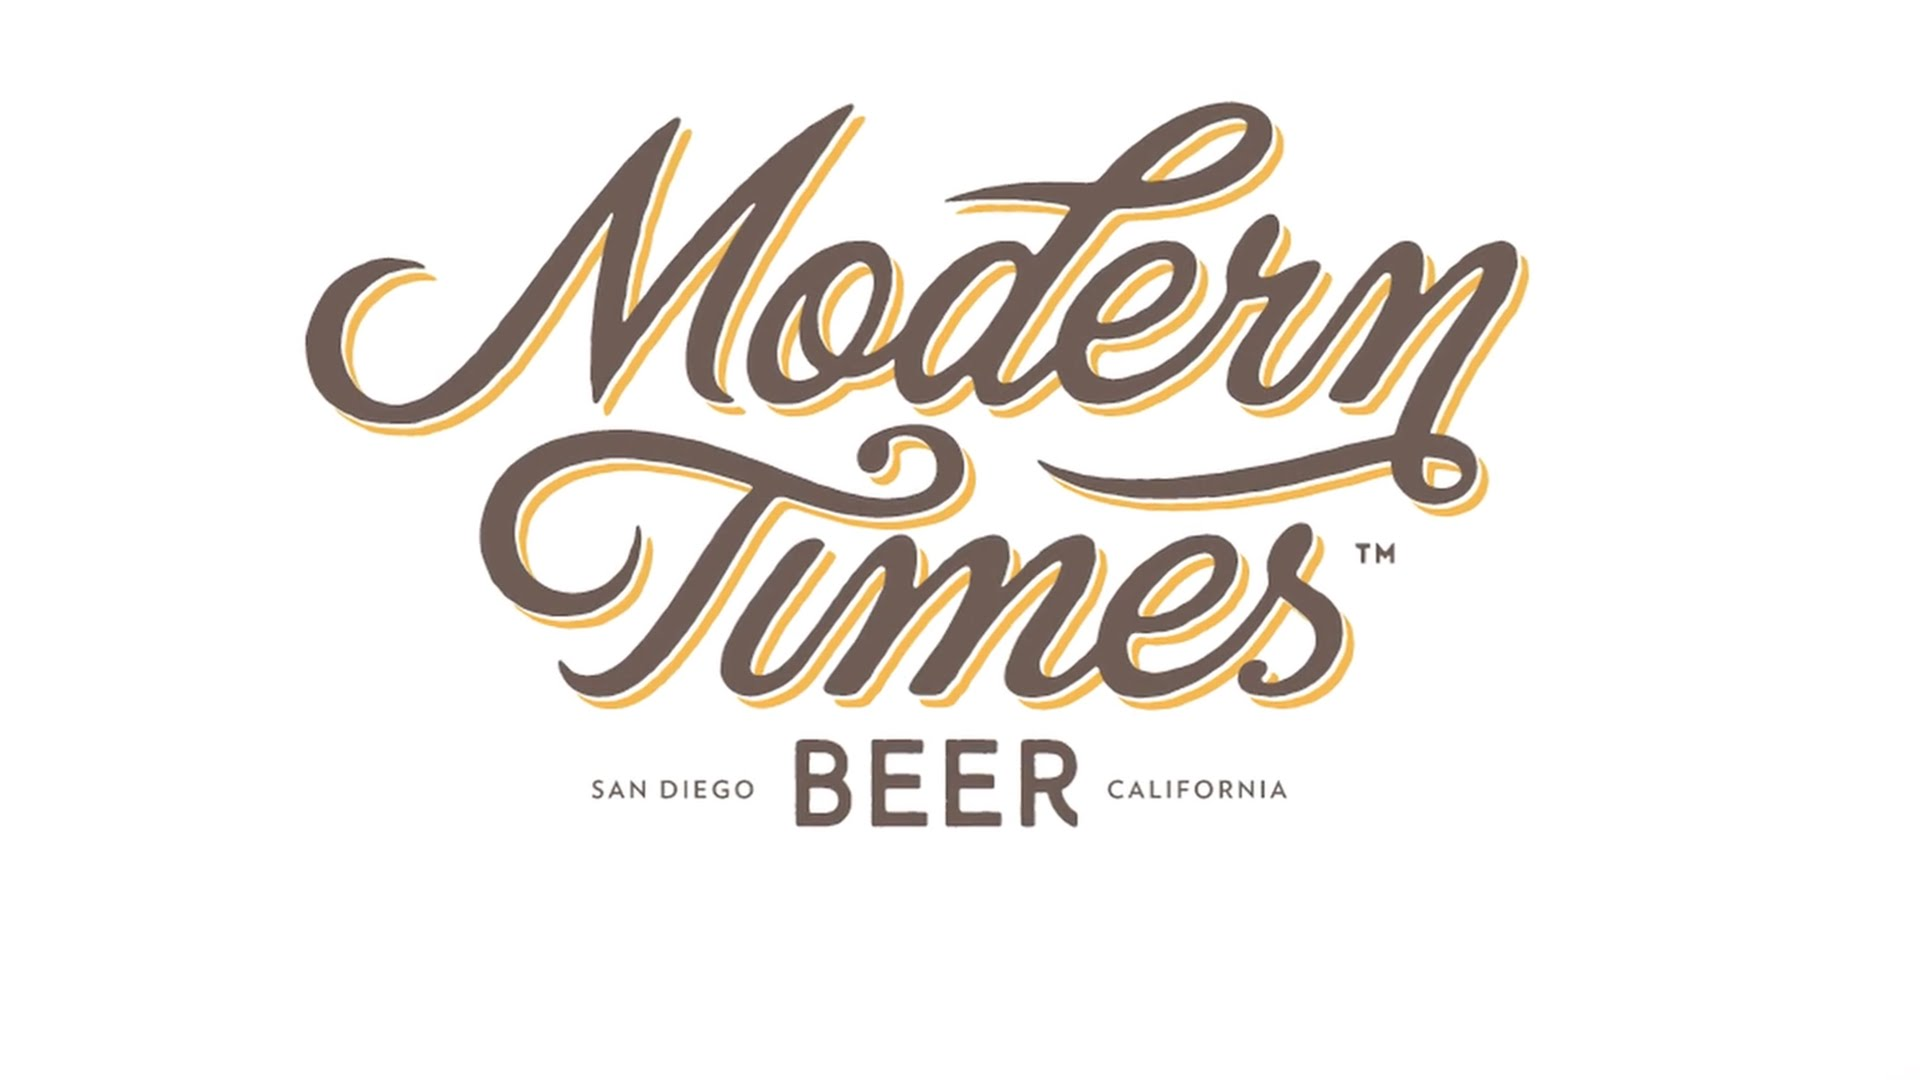 San Diego's Modern Times Beer Hits NYC